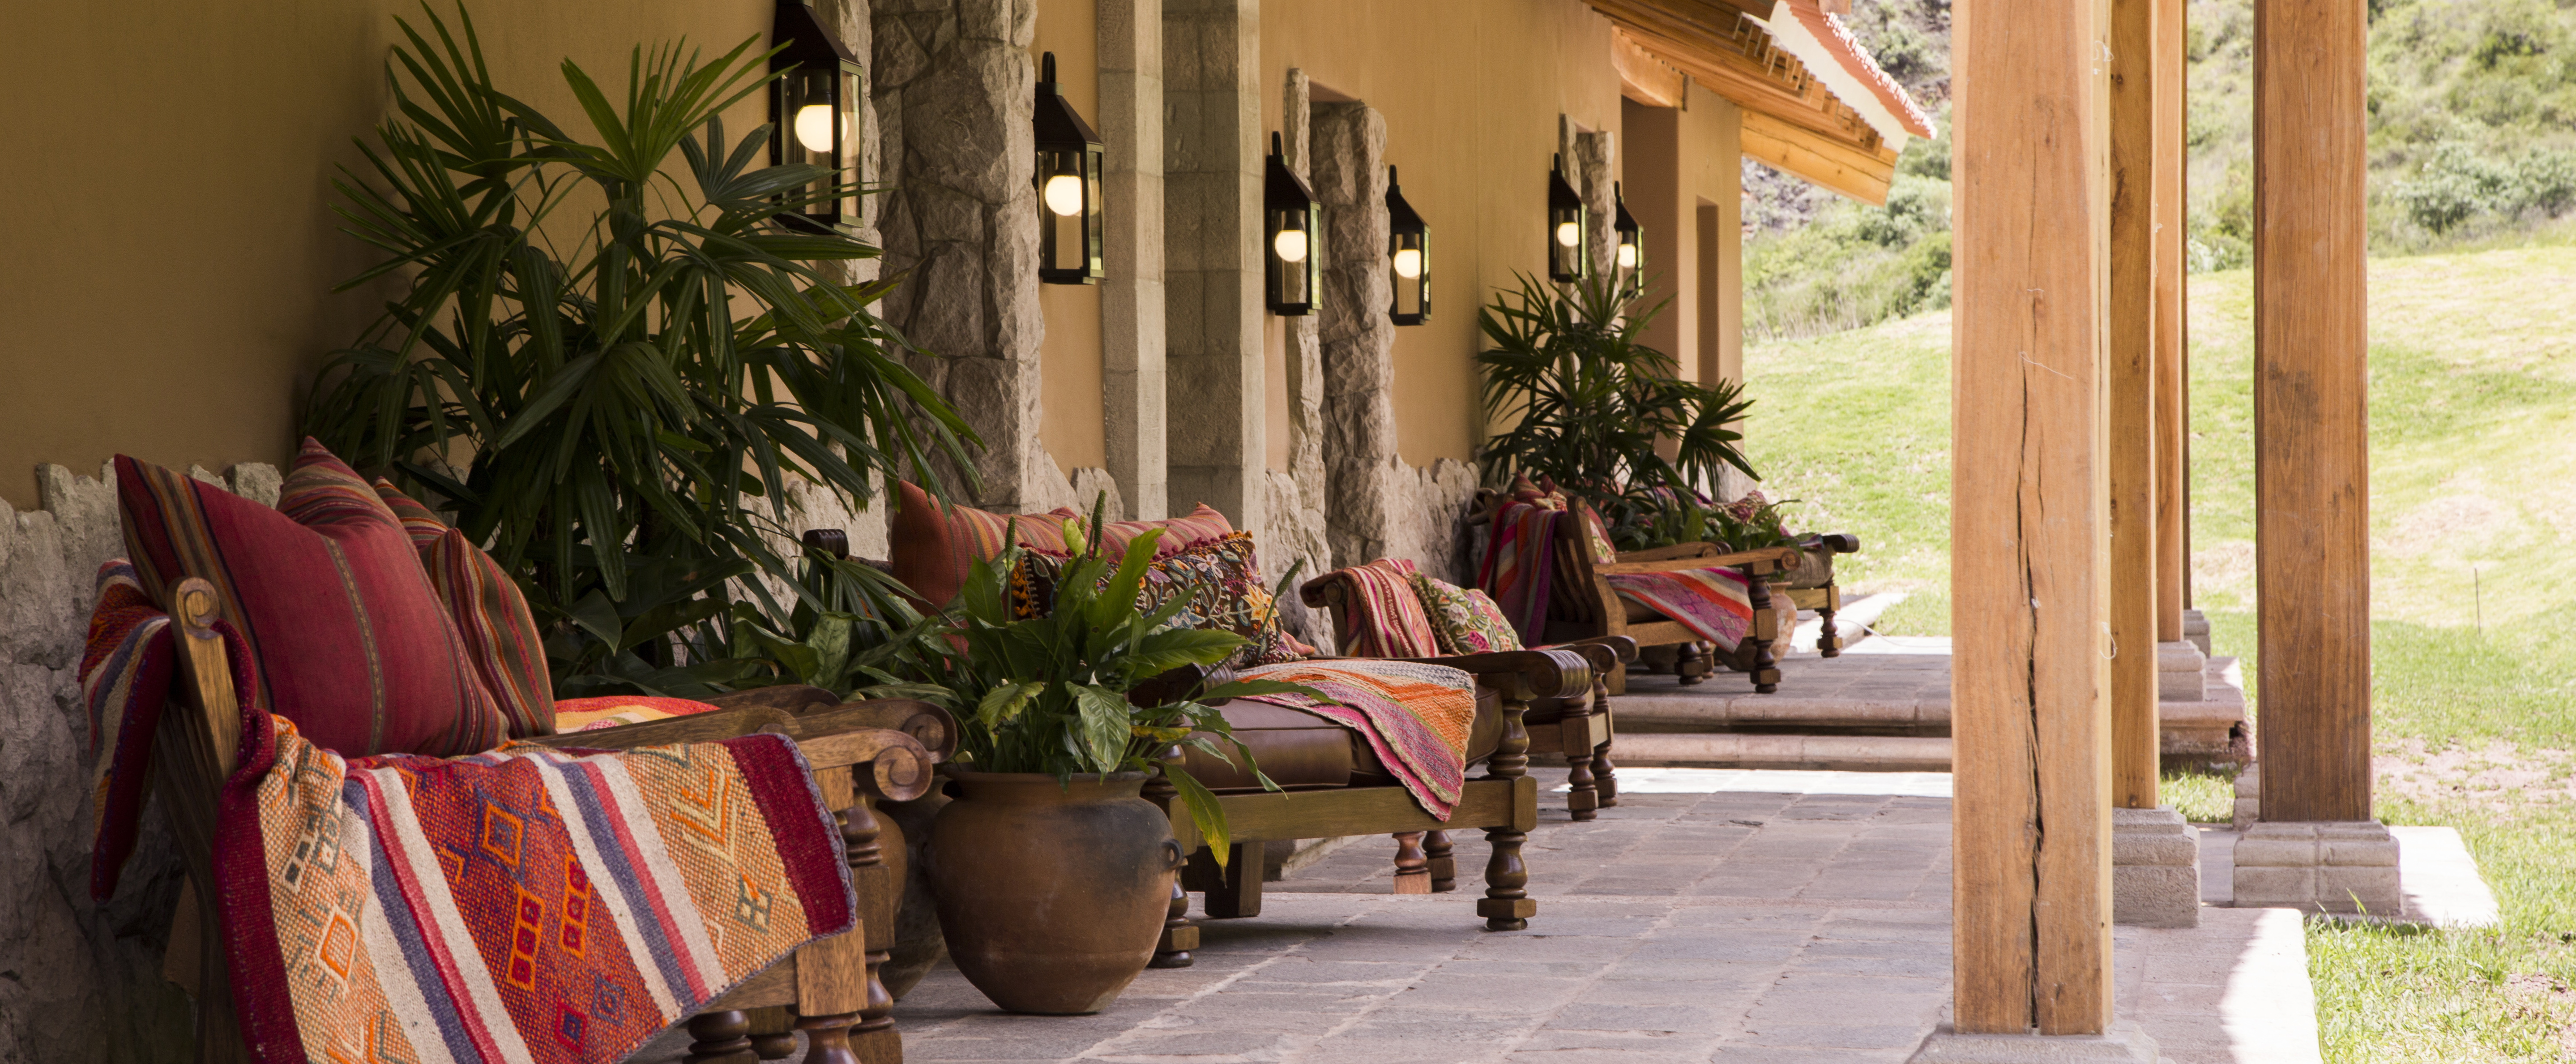 relaxation-terrace-hacienda-urubamba